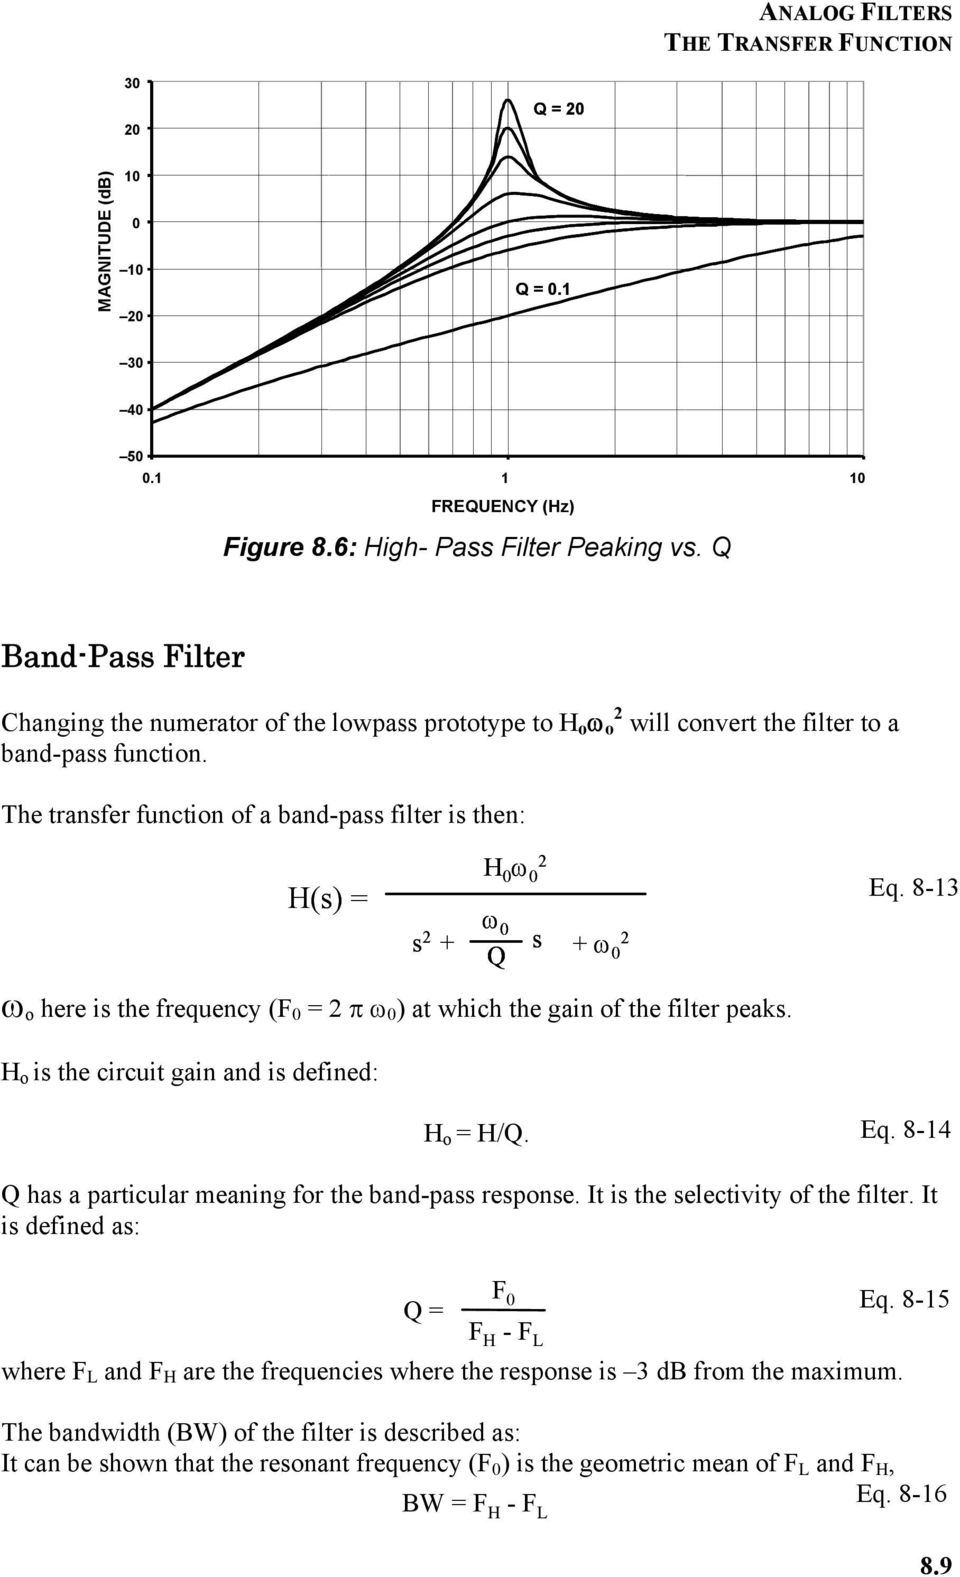 Chapter 8 Analog Filters Pdf Lm833 3 Band Audio Equalizer The Transfer Function Of A Bandpass Filter Is Then Hs S